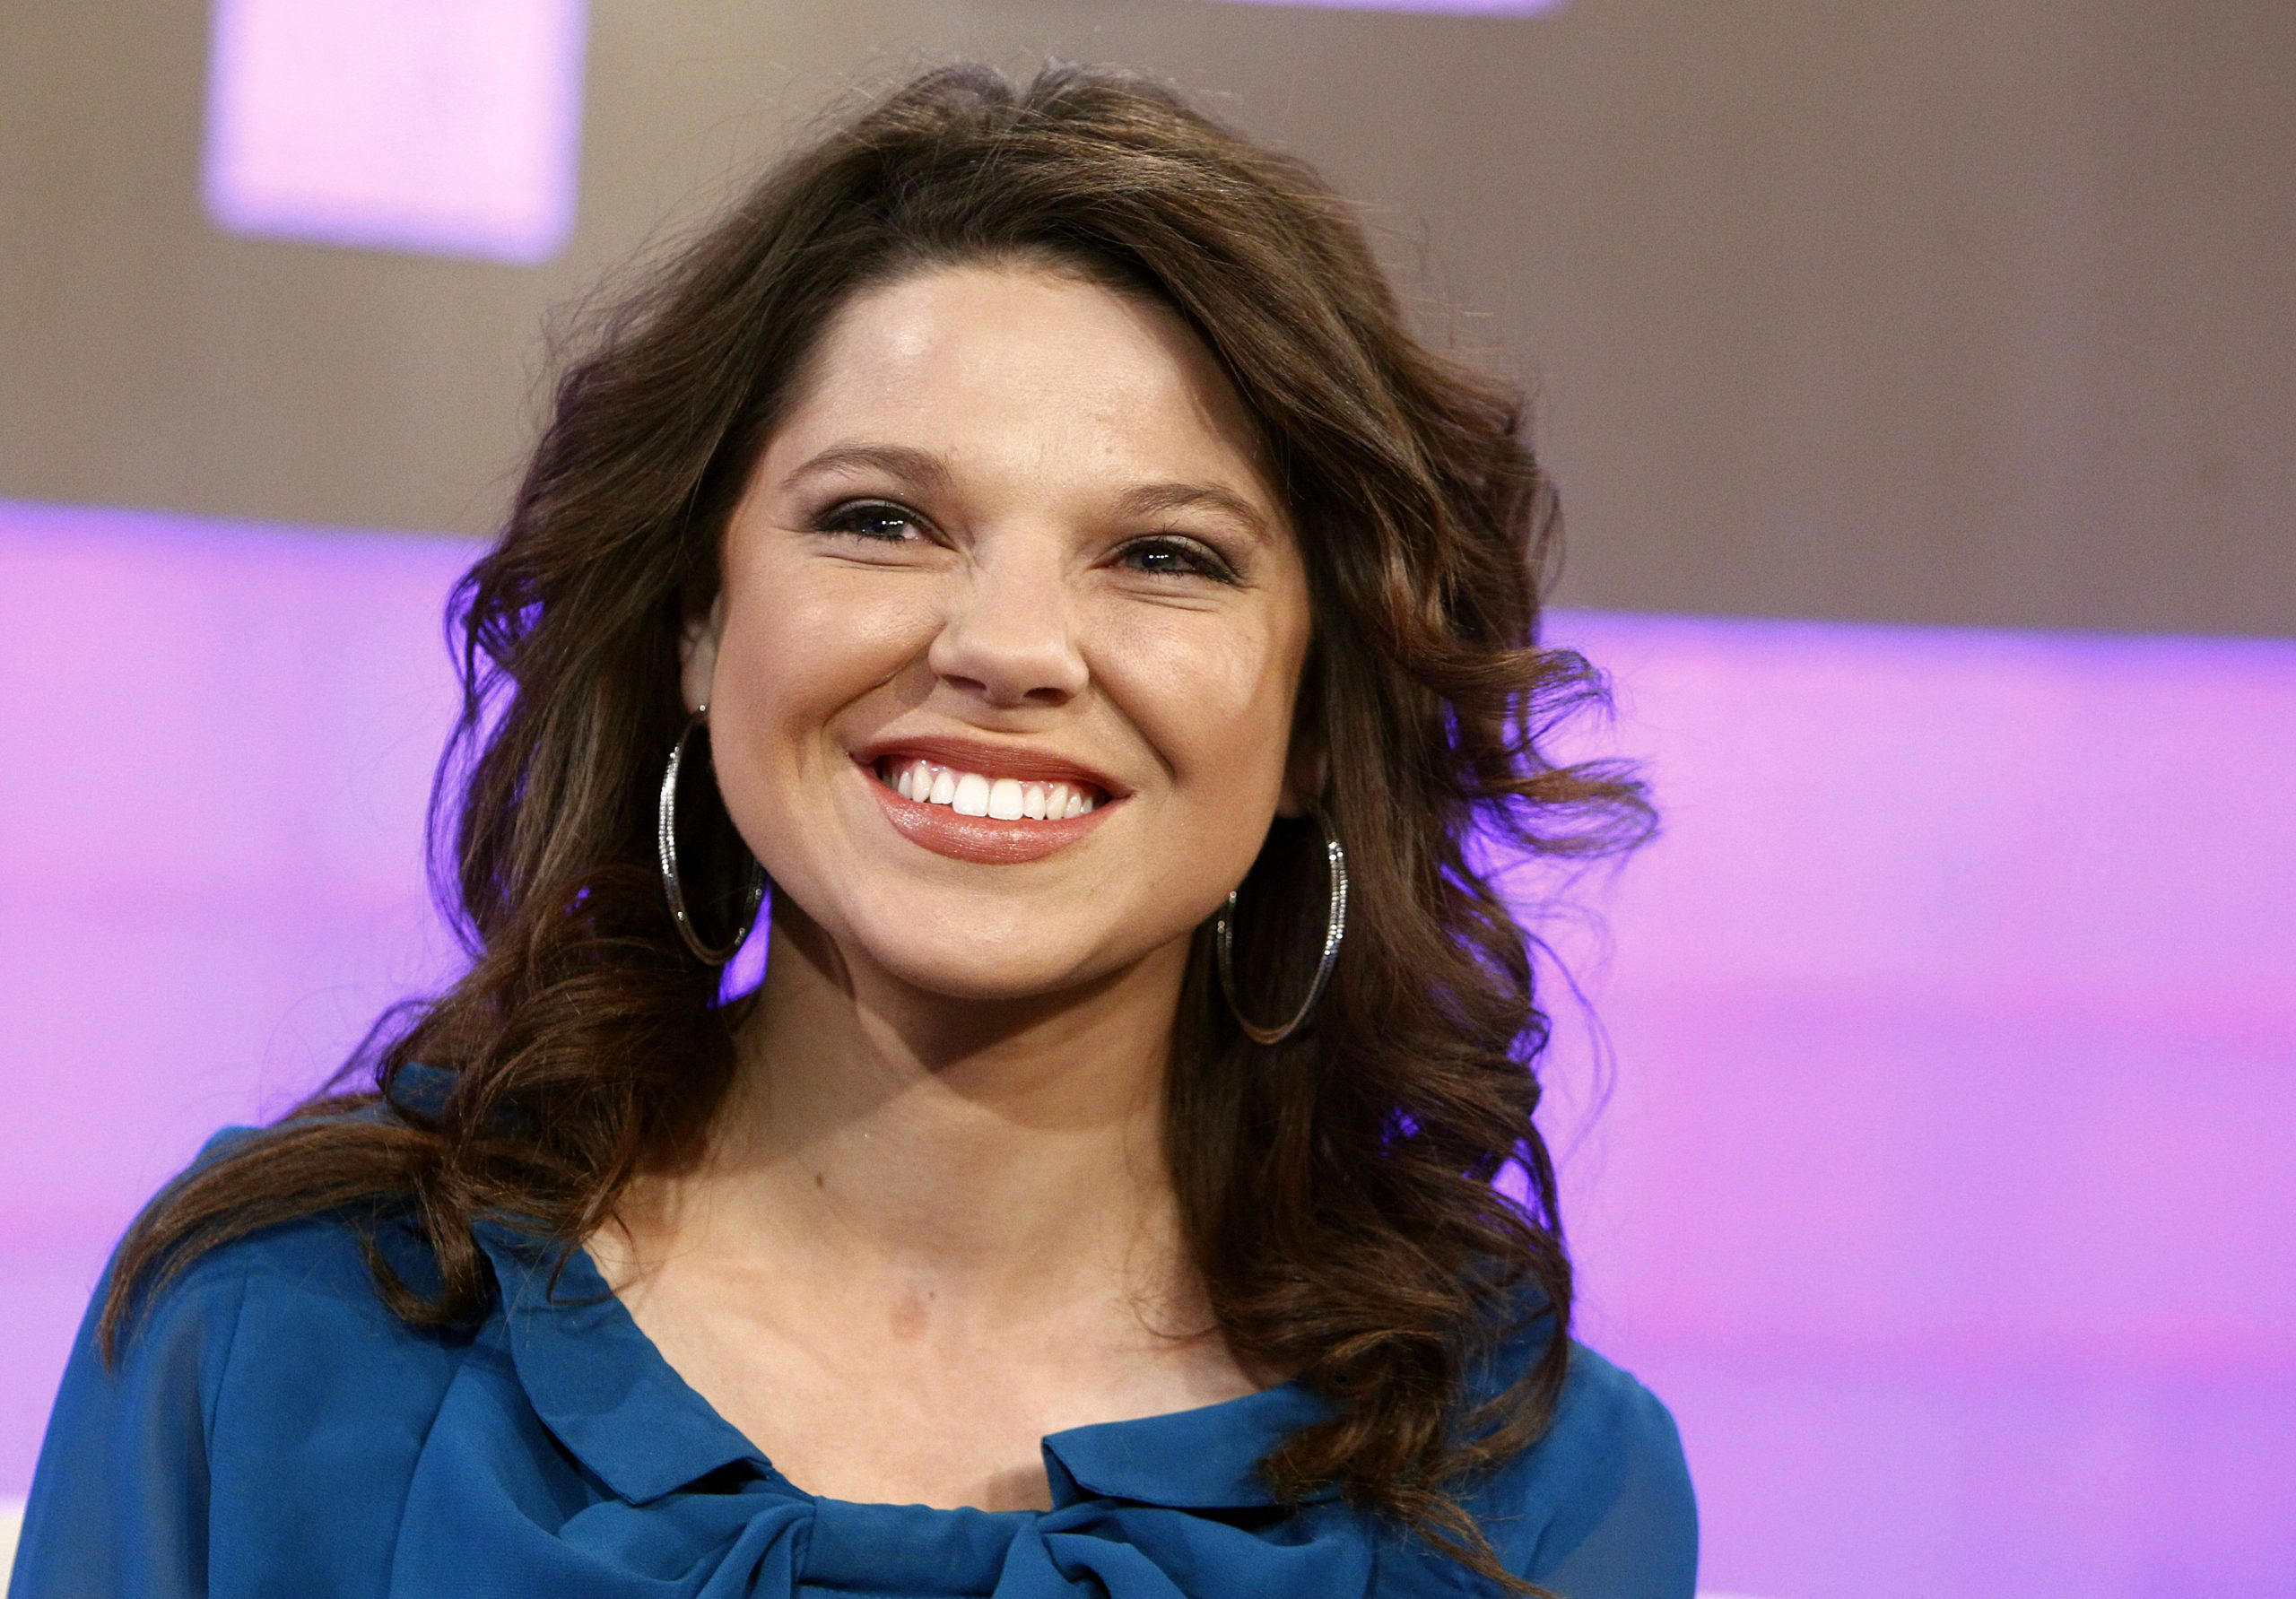 Amy Duggar, wearing a blue top, during an appearance on 'Today'